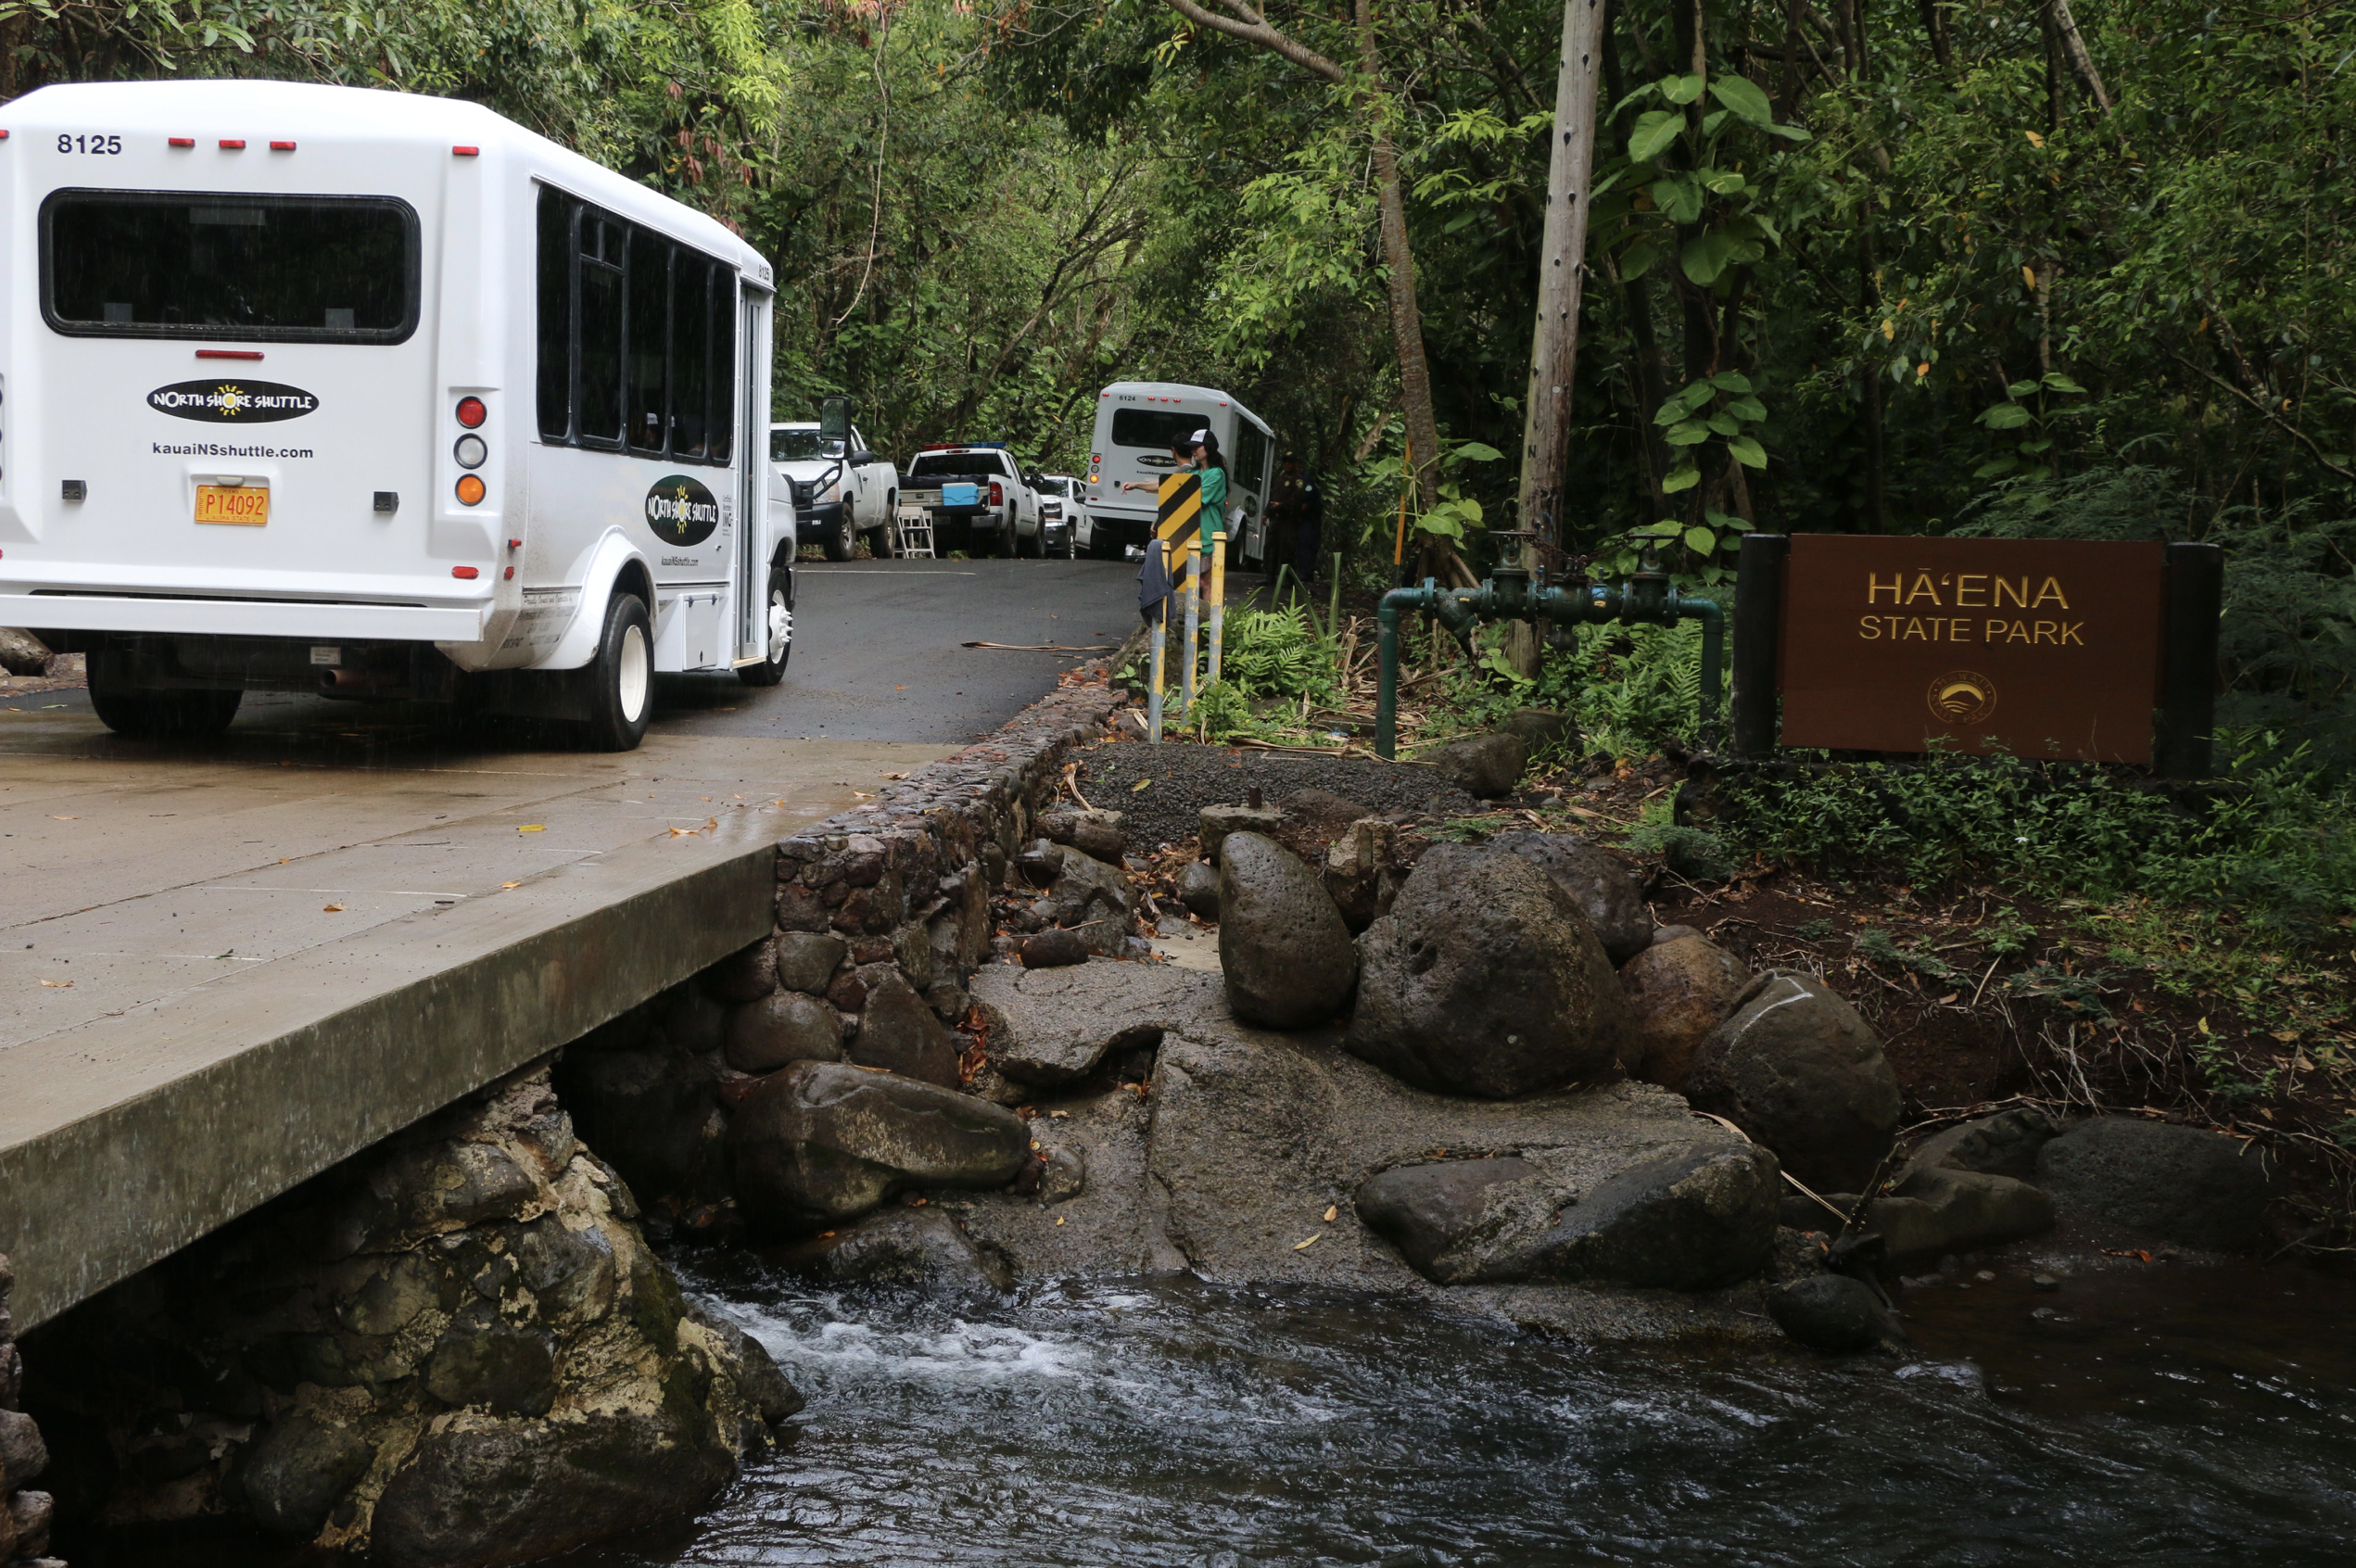 2018 Kaua'i Floods and Ongoing Pandemic Make Way for Adaptive Management